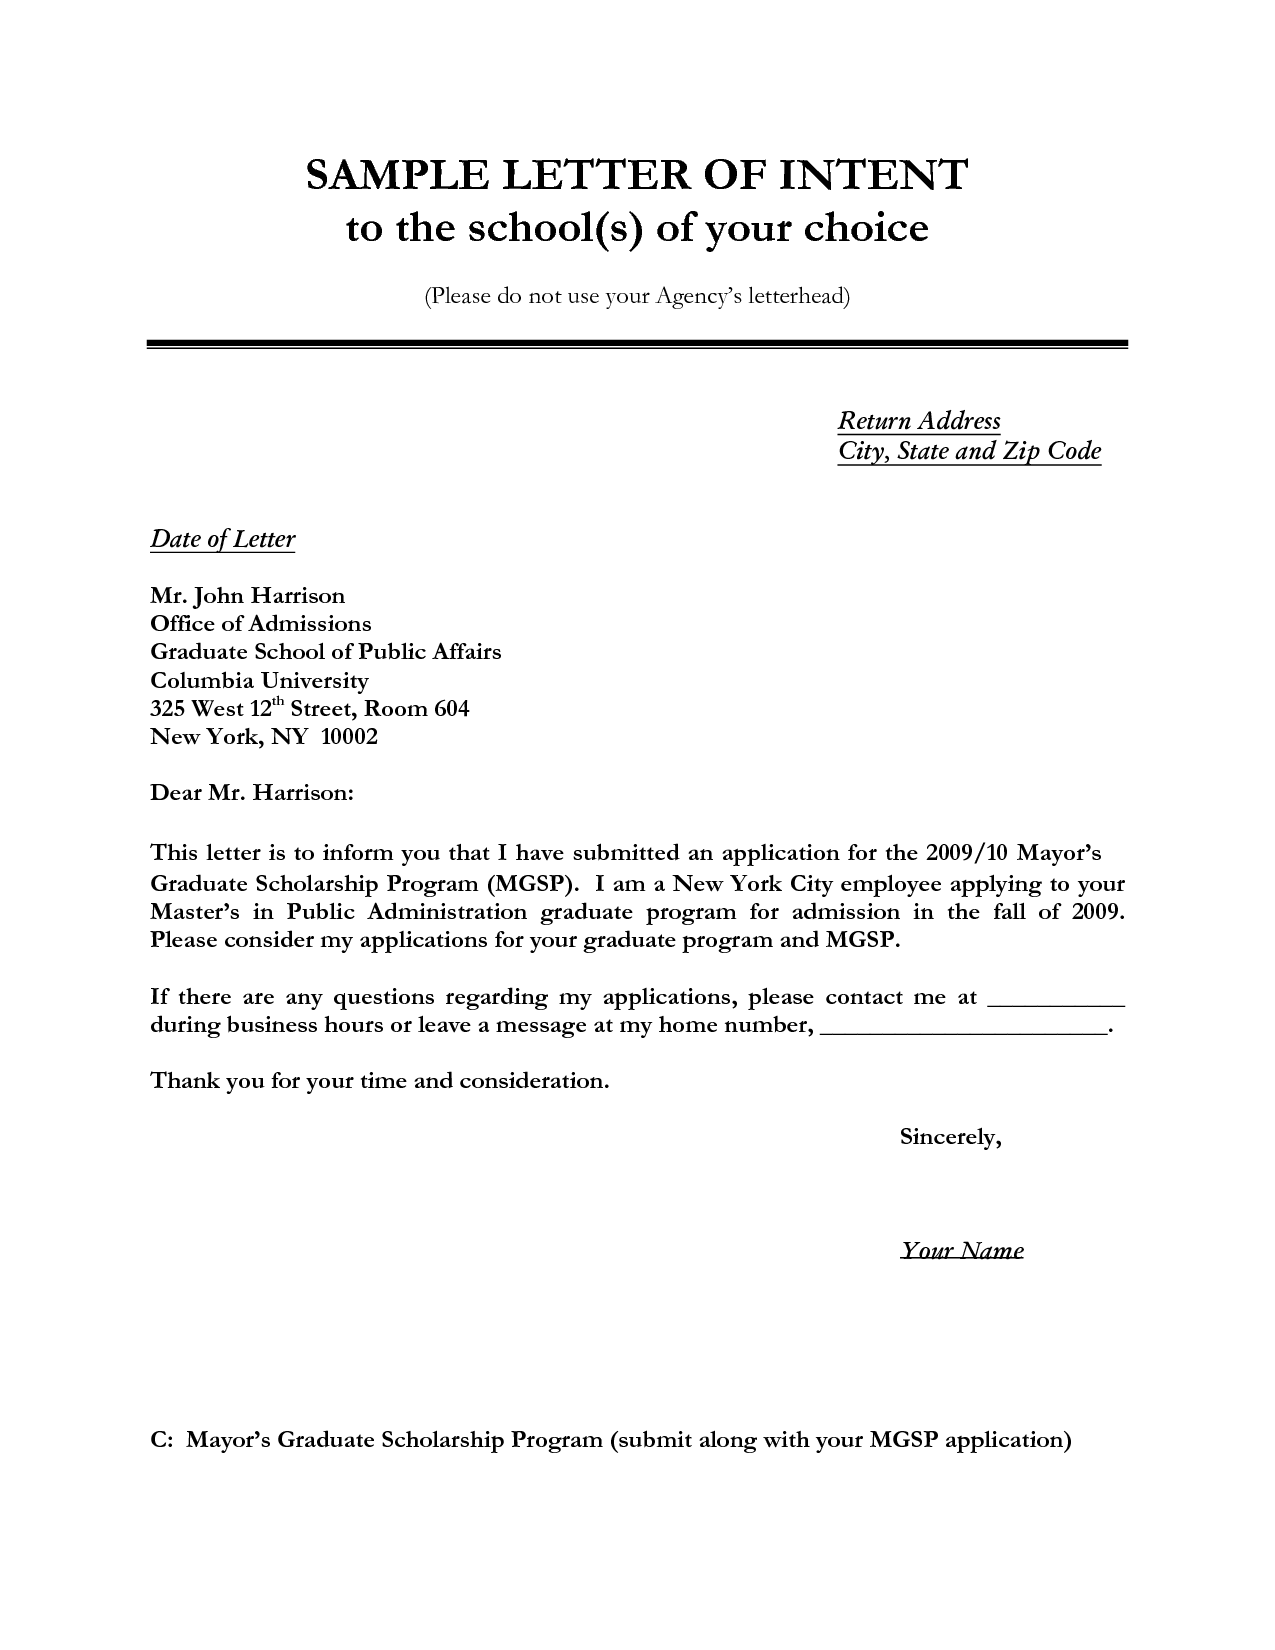 Letter Of Intent Sample  KalushvideoCom  Sample Letter Of